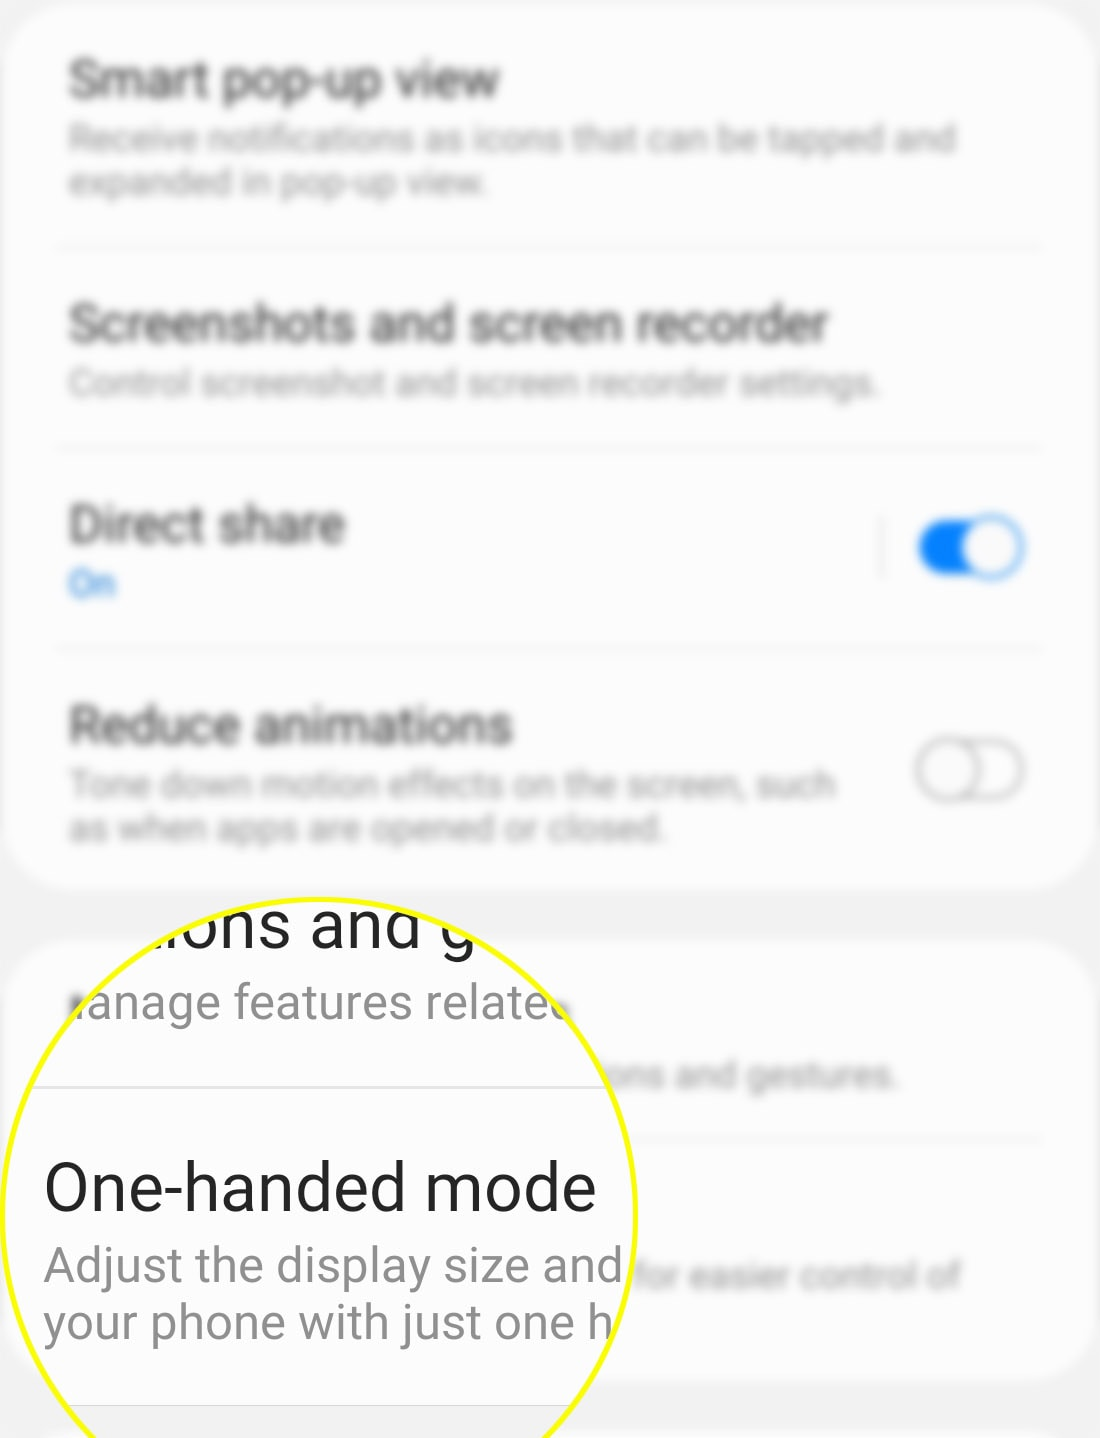 activate galaxy s20 one-handed mode - turn on switch